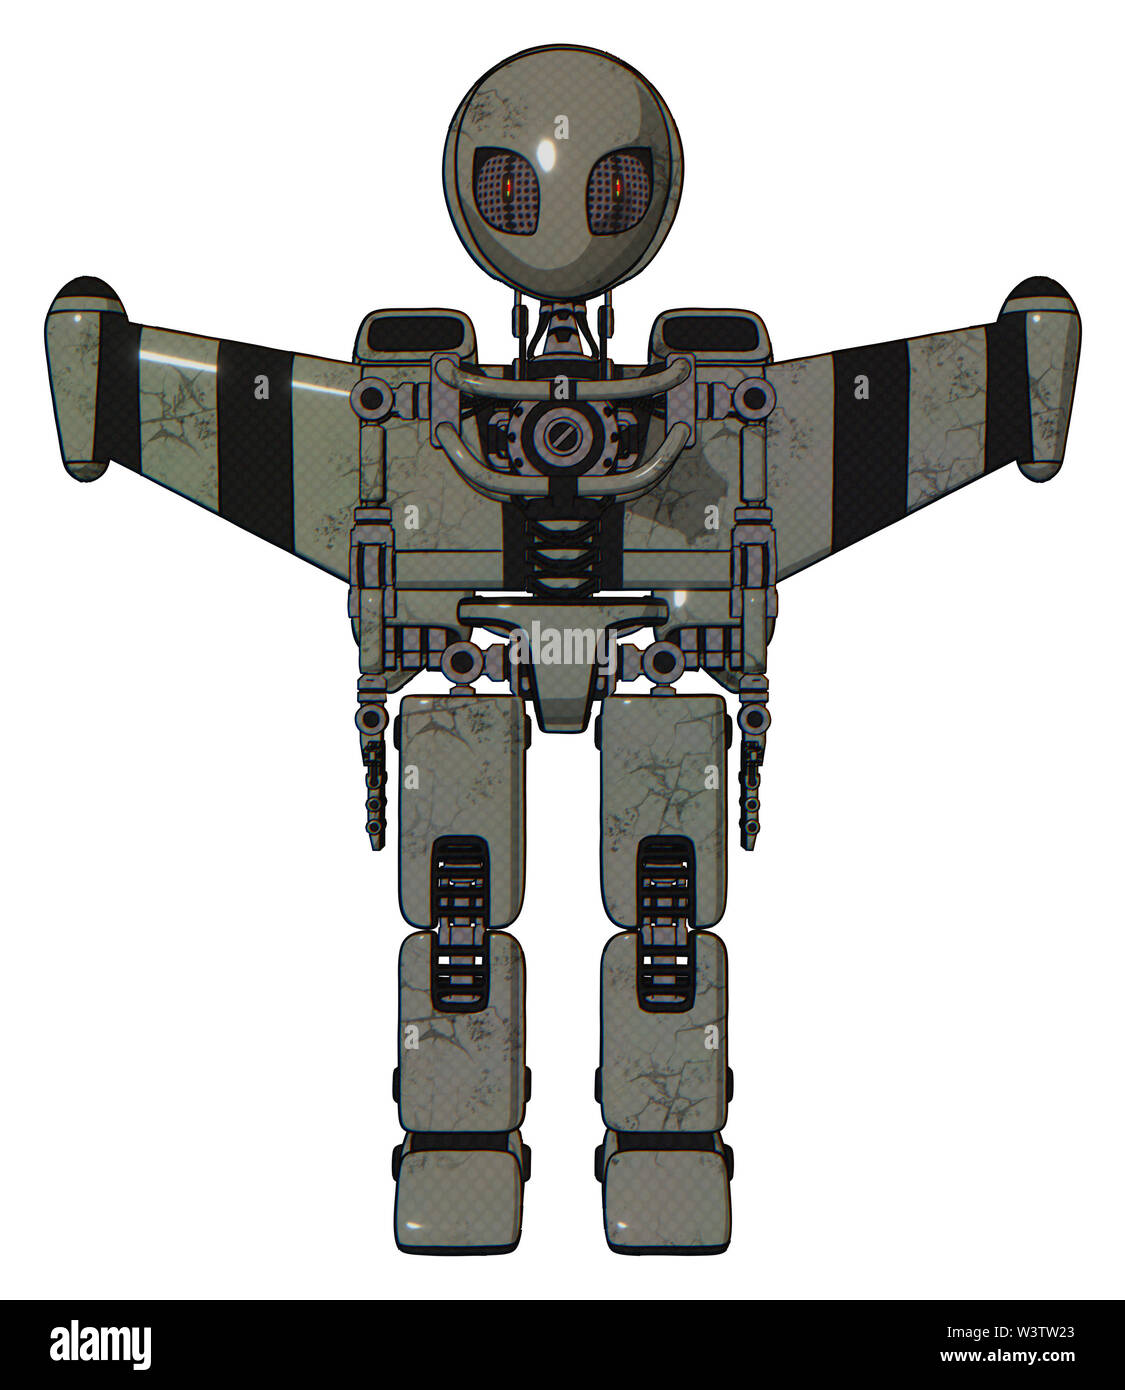 Cyborg containing elements: grey alien style head, metal grate eyes, light chest exoshielding, stellar jet wing rocket pack, no chest plating, prototy - Stock Image